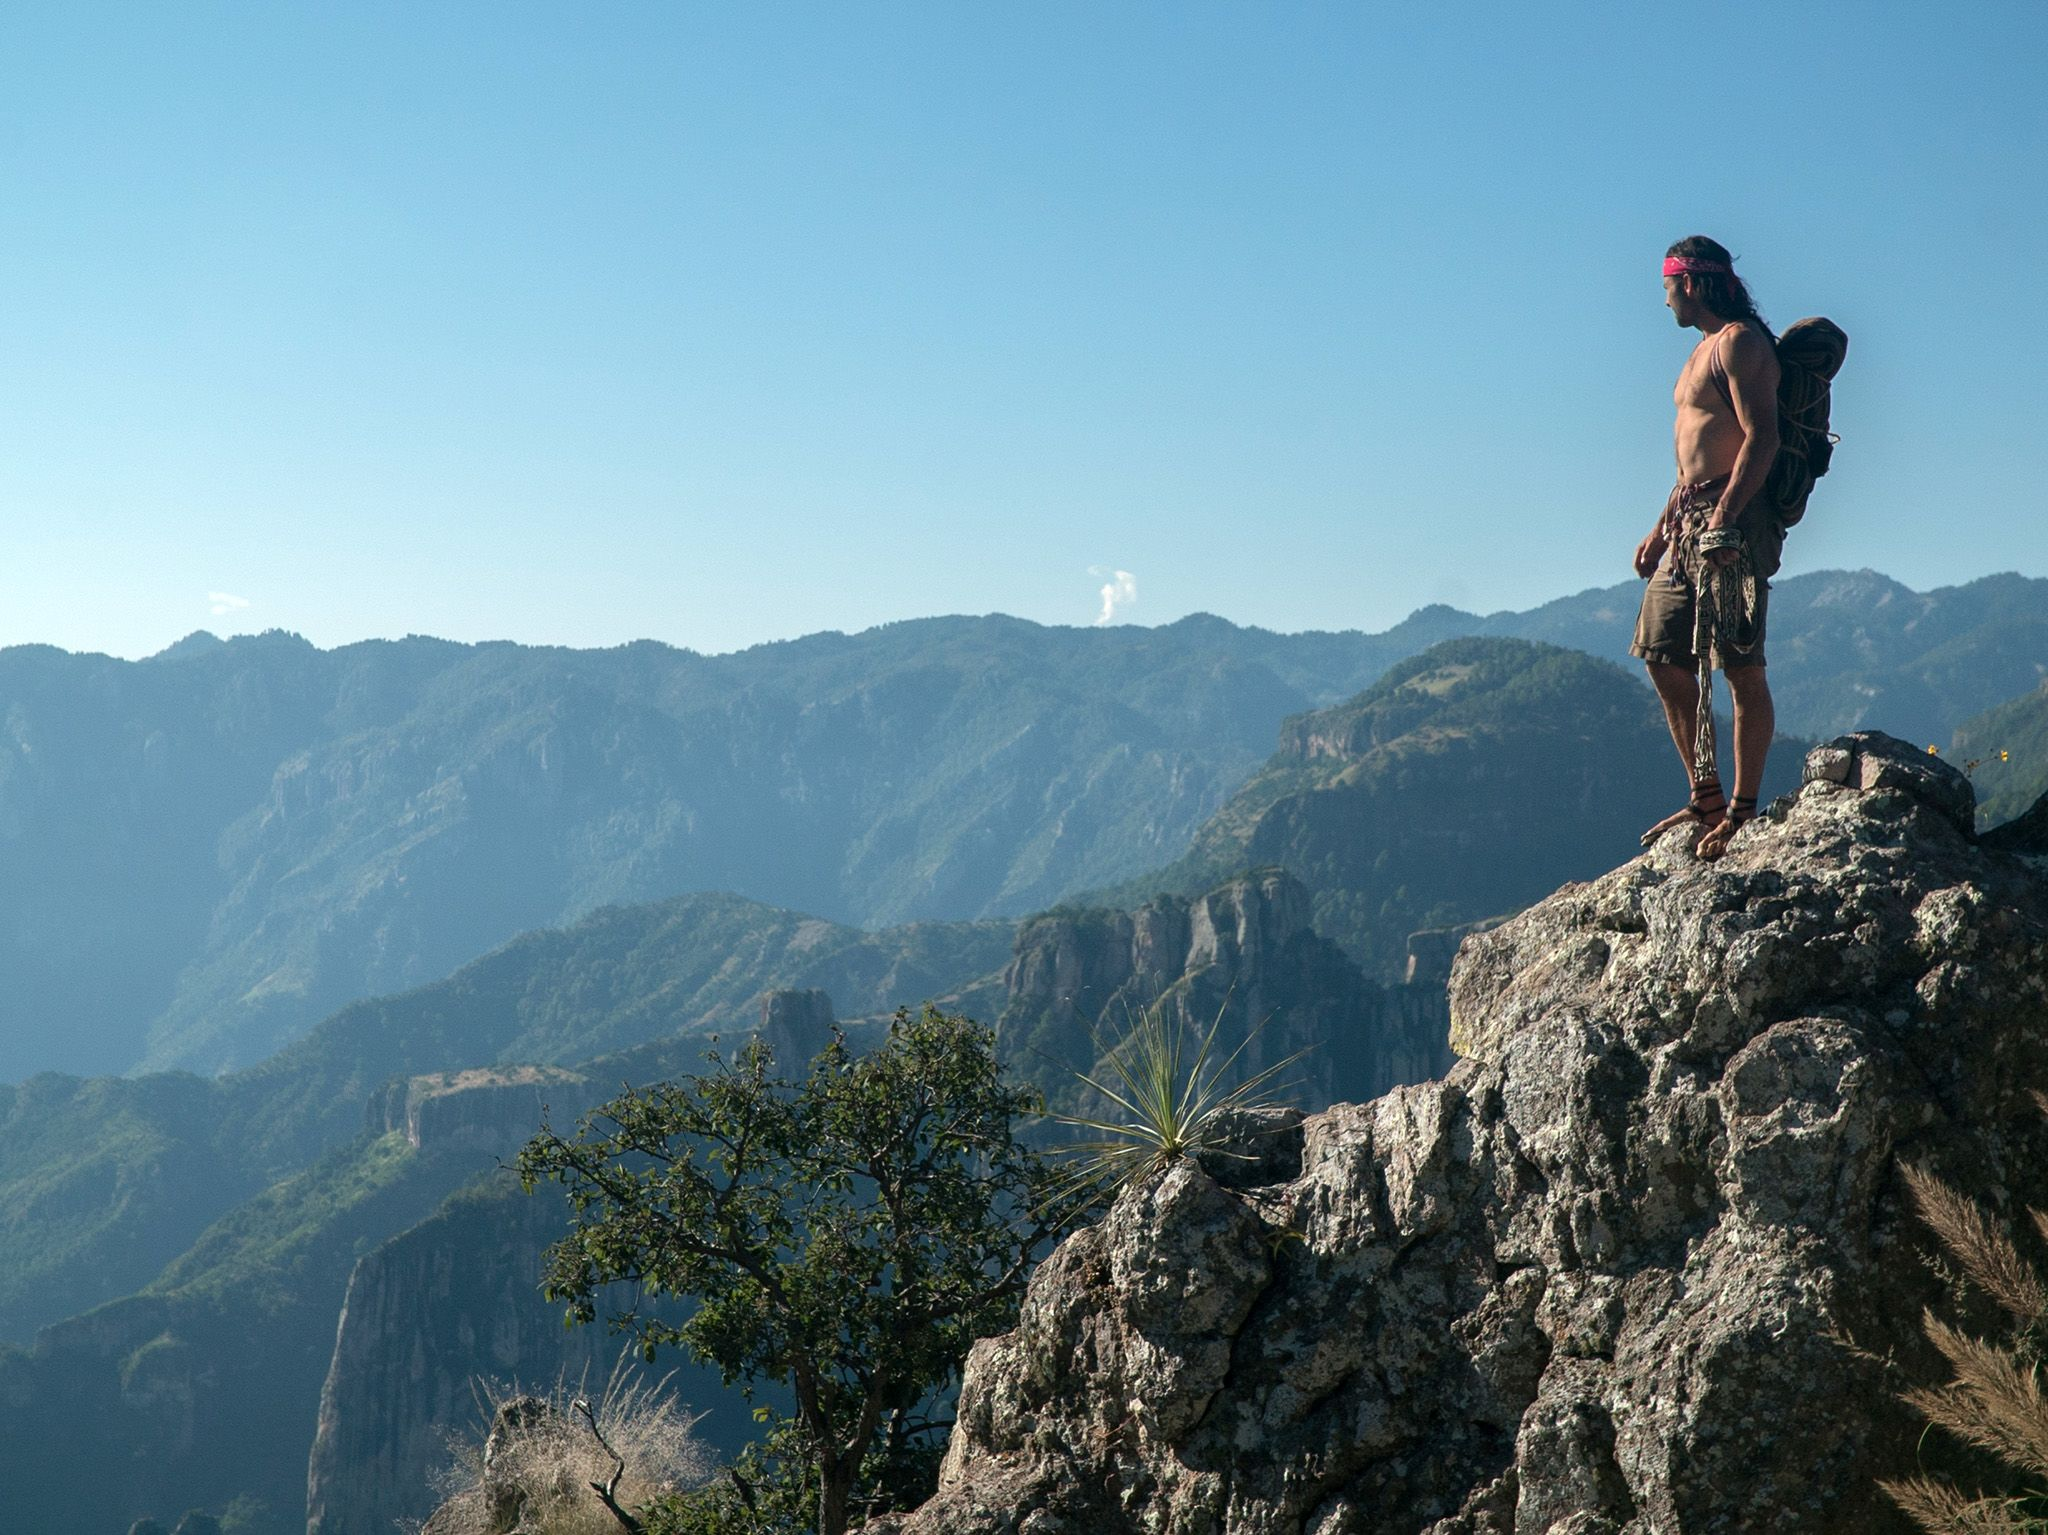 Copper Canyon, Mexico:  Hazen on Copper Canyon. This image is from Primal Survivor. [Foto del giorno - dicembre 2018]